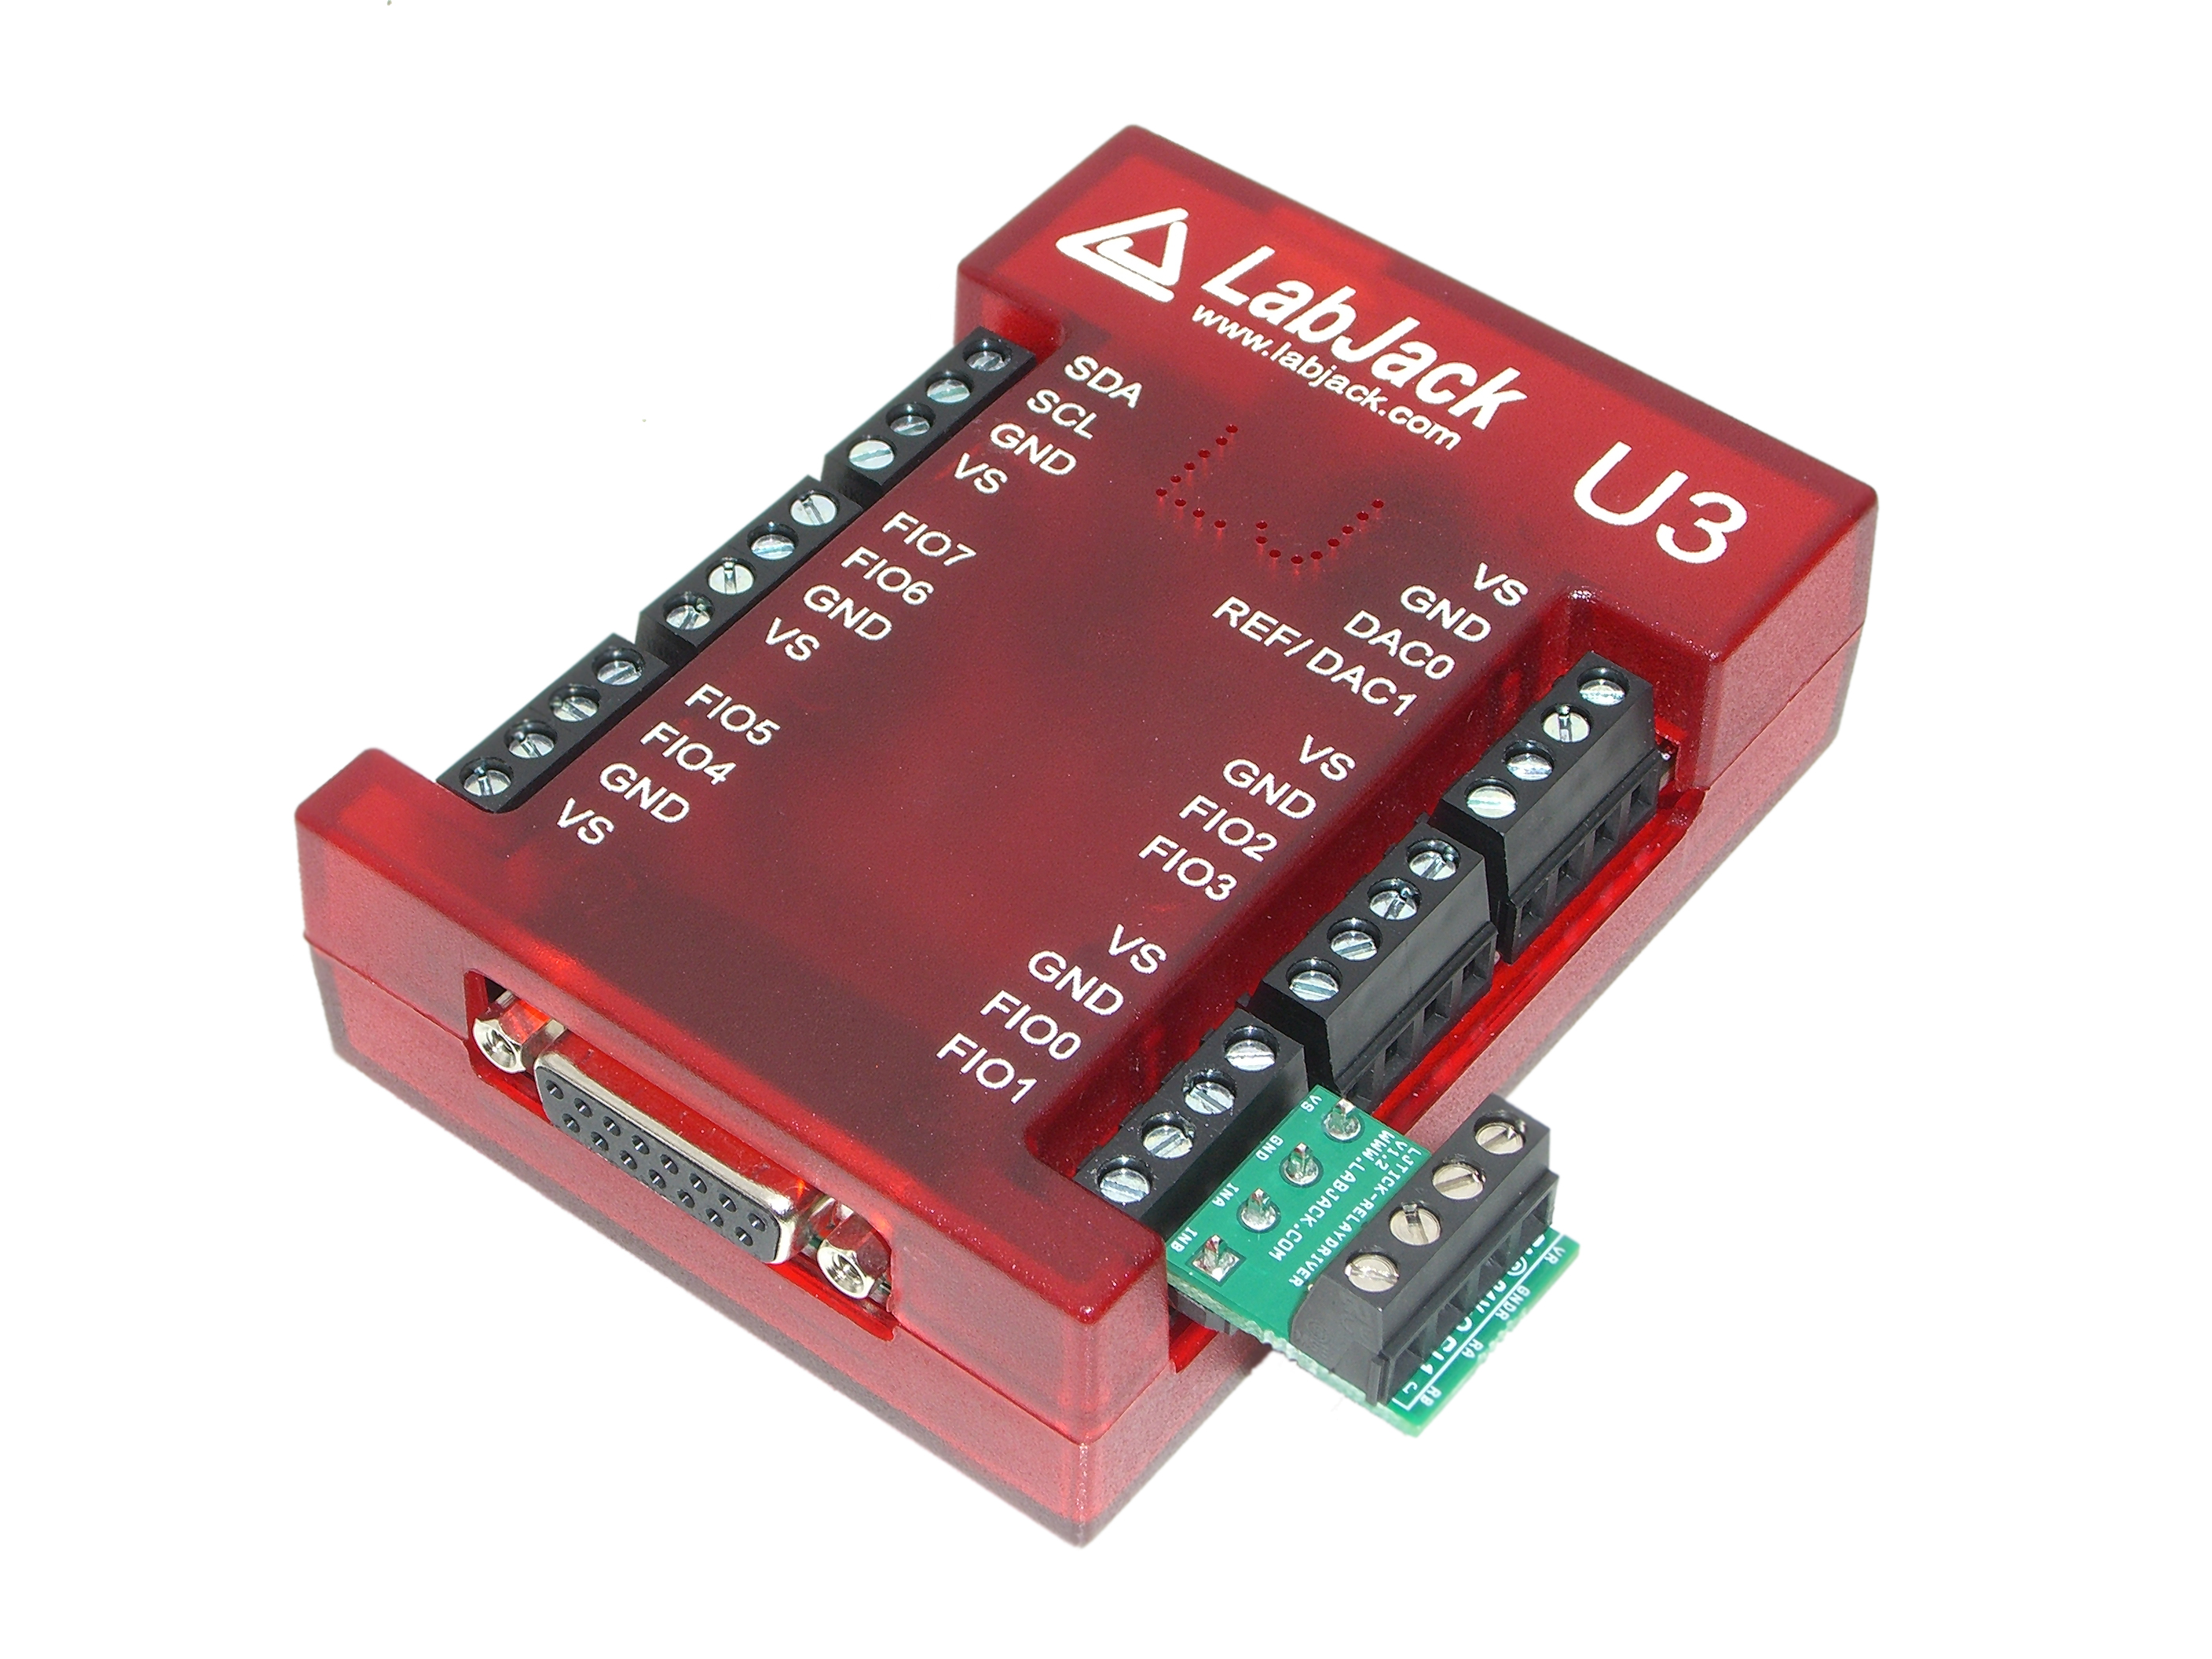 LabJack LJTick-RelayDriver Relay Controller Accessory Compatible with LabJack USB, Ethernet, WiFi DAQ Devices with U3-LV